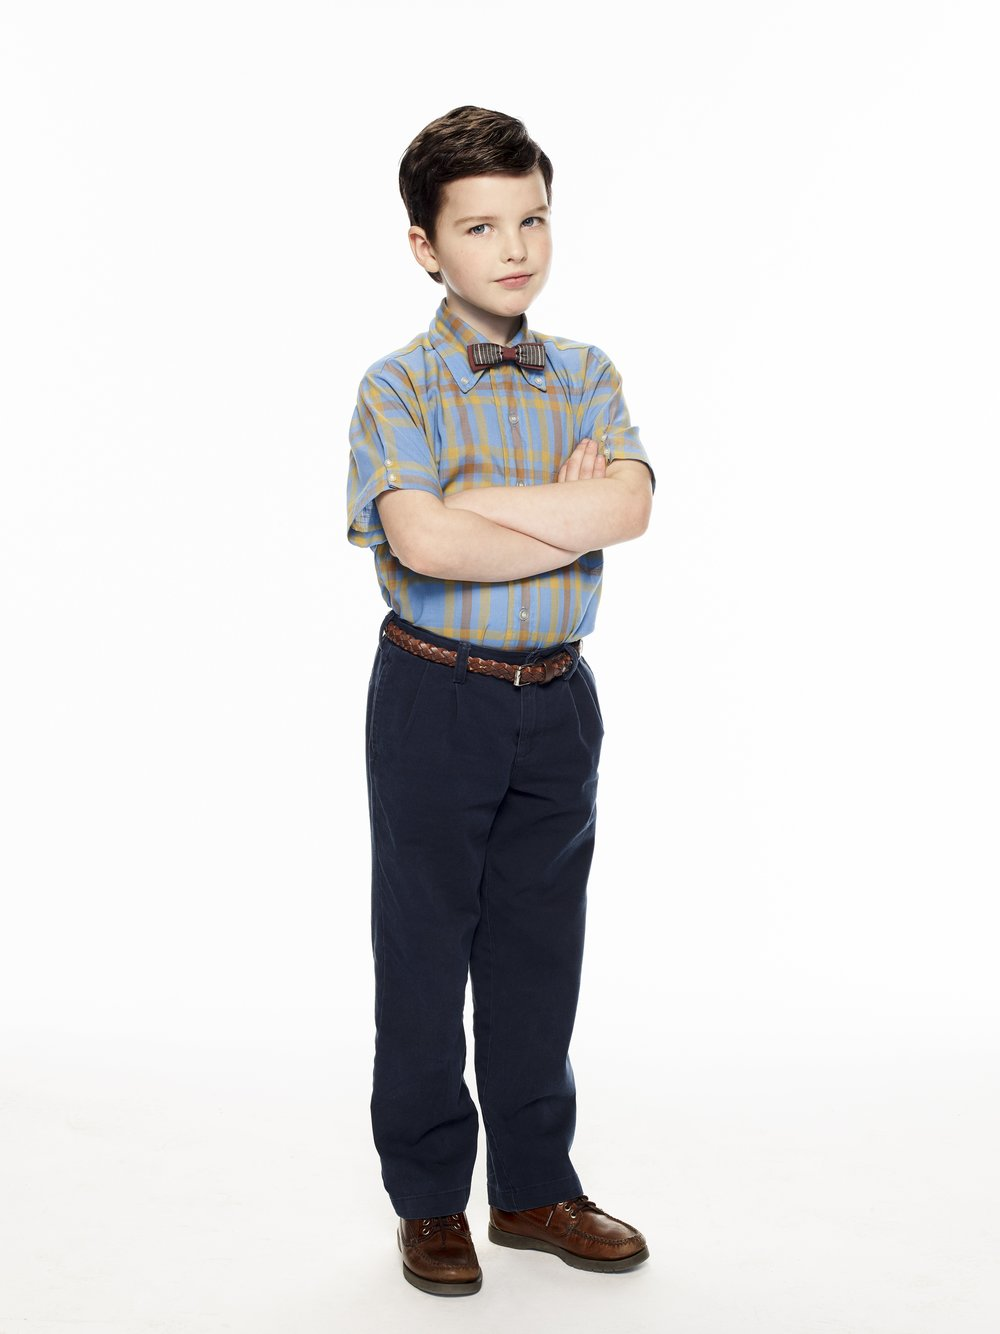 Iain Armitage is Young Sheldon  Image - Nine